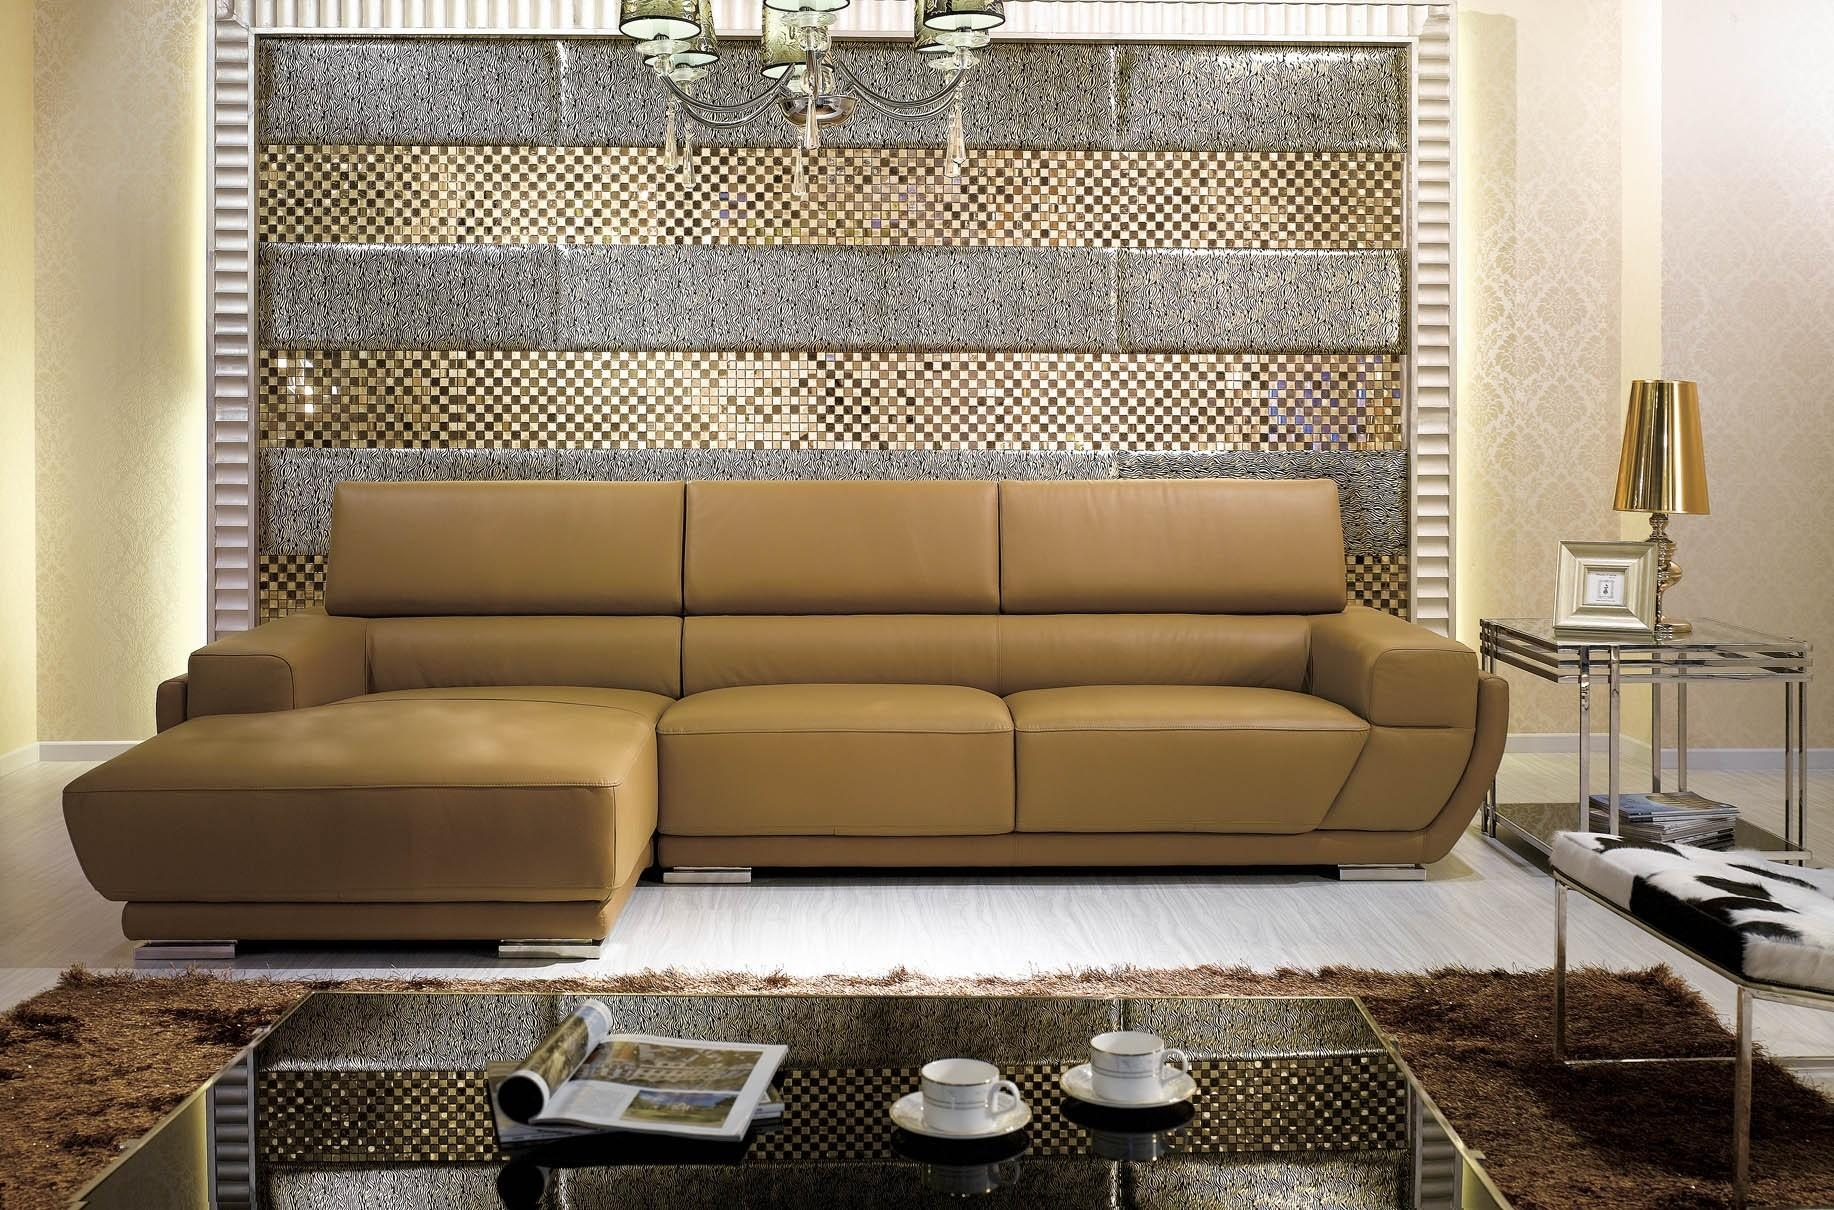 K8300 Modern Camel Italian Leather Sectional Sofa For Camel Sectional Sofa (Image 12 of 15)